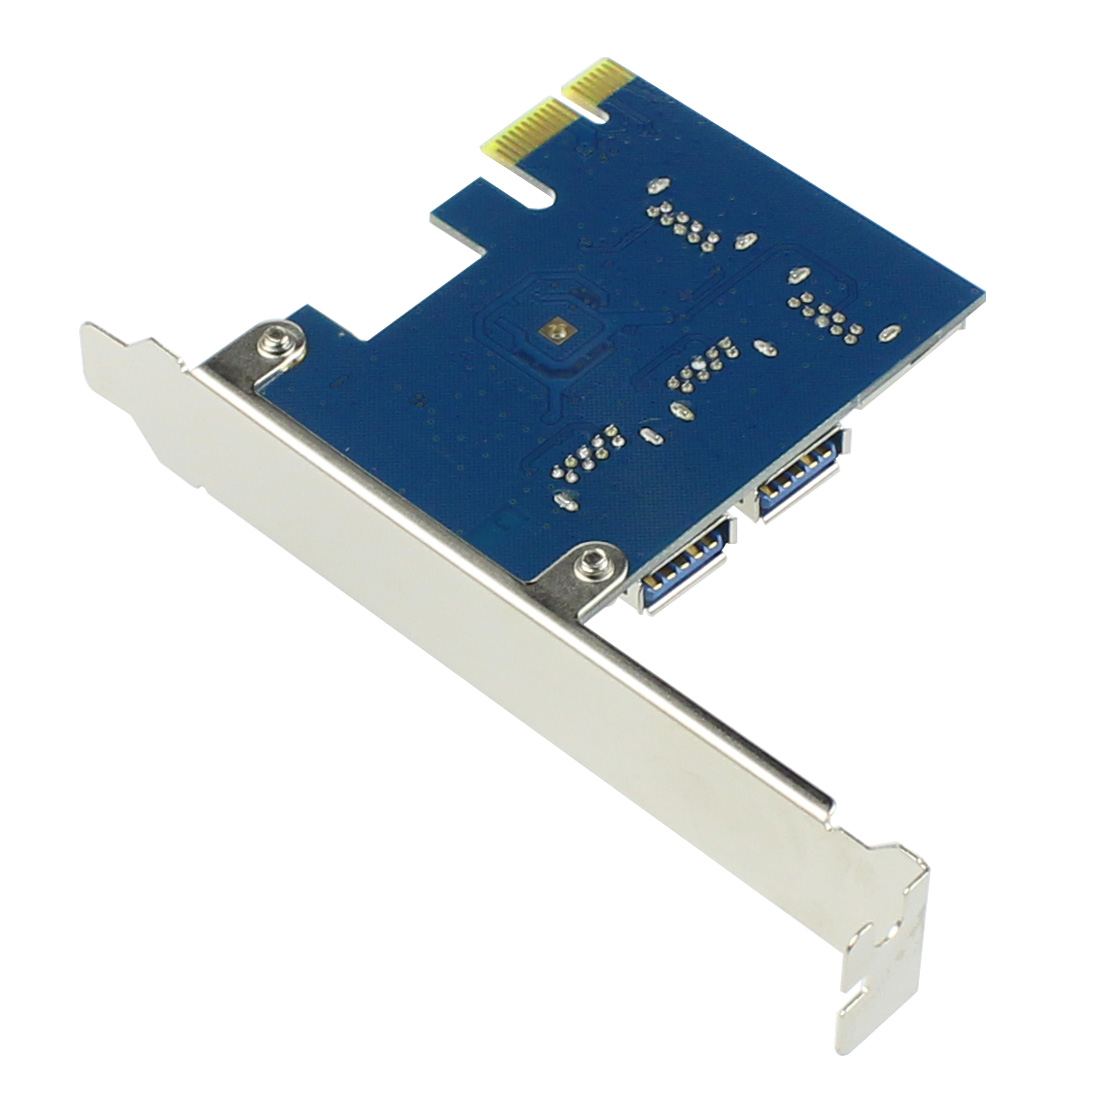 PCIE PCI-E PCI Express Riser Card 1x to 16x 1 to 4 USB 3.0 Slot Multiplier Hub Adapter For Bitcoin Mining Miner BTC Devices-2